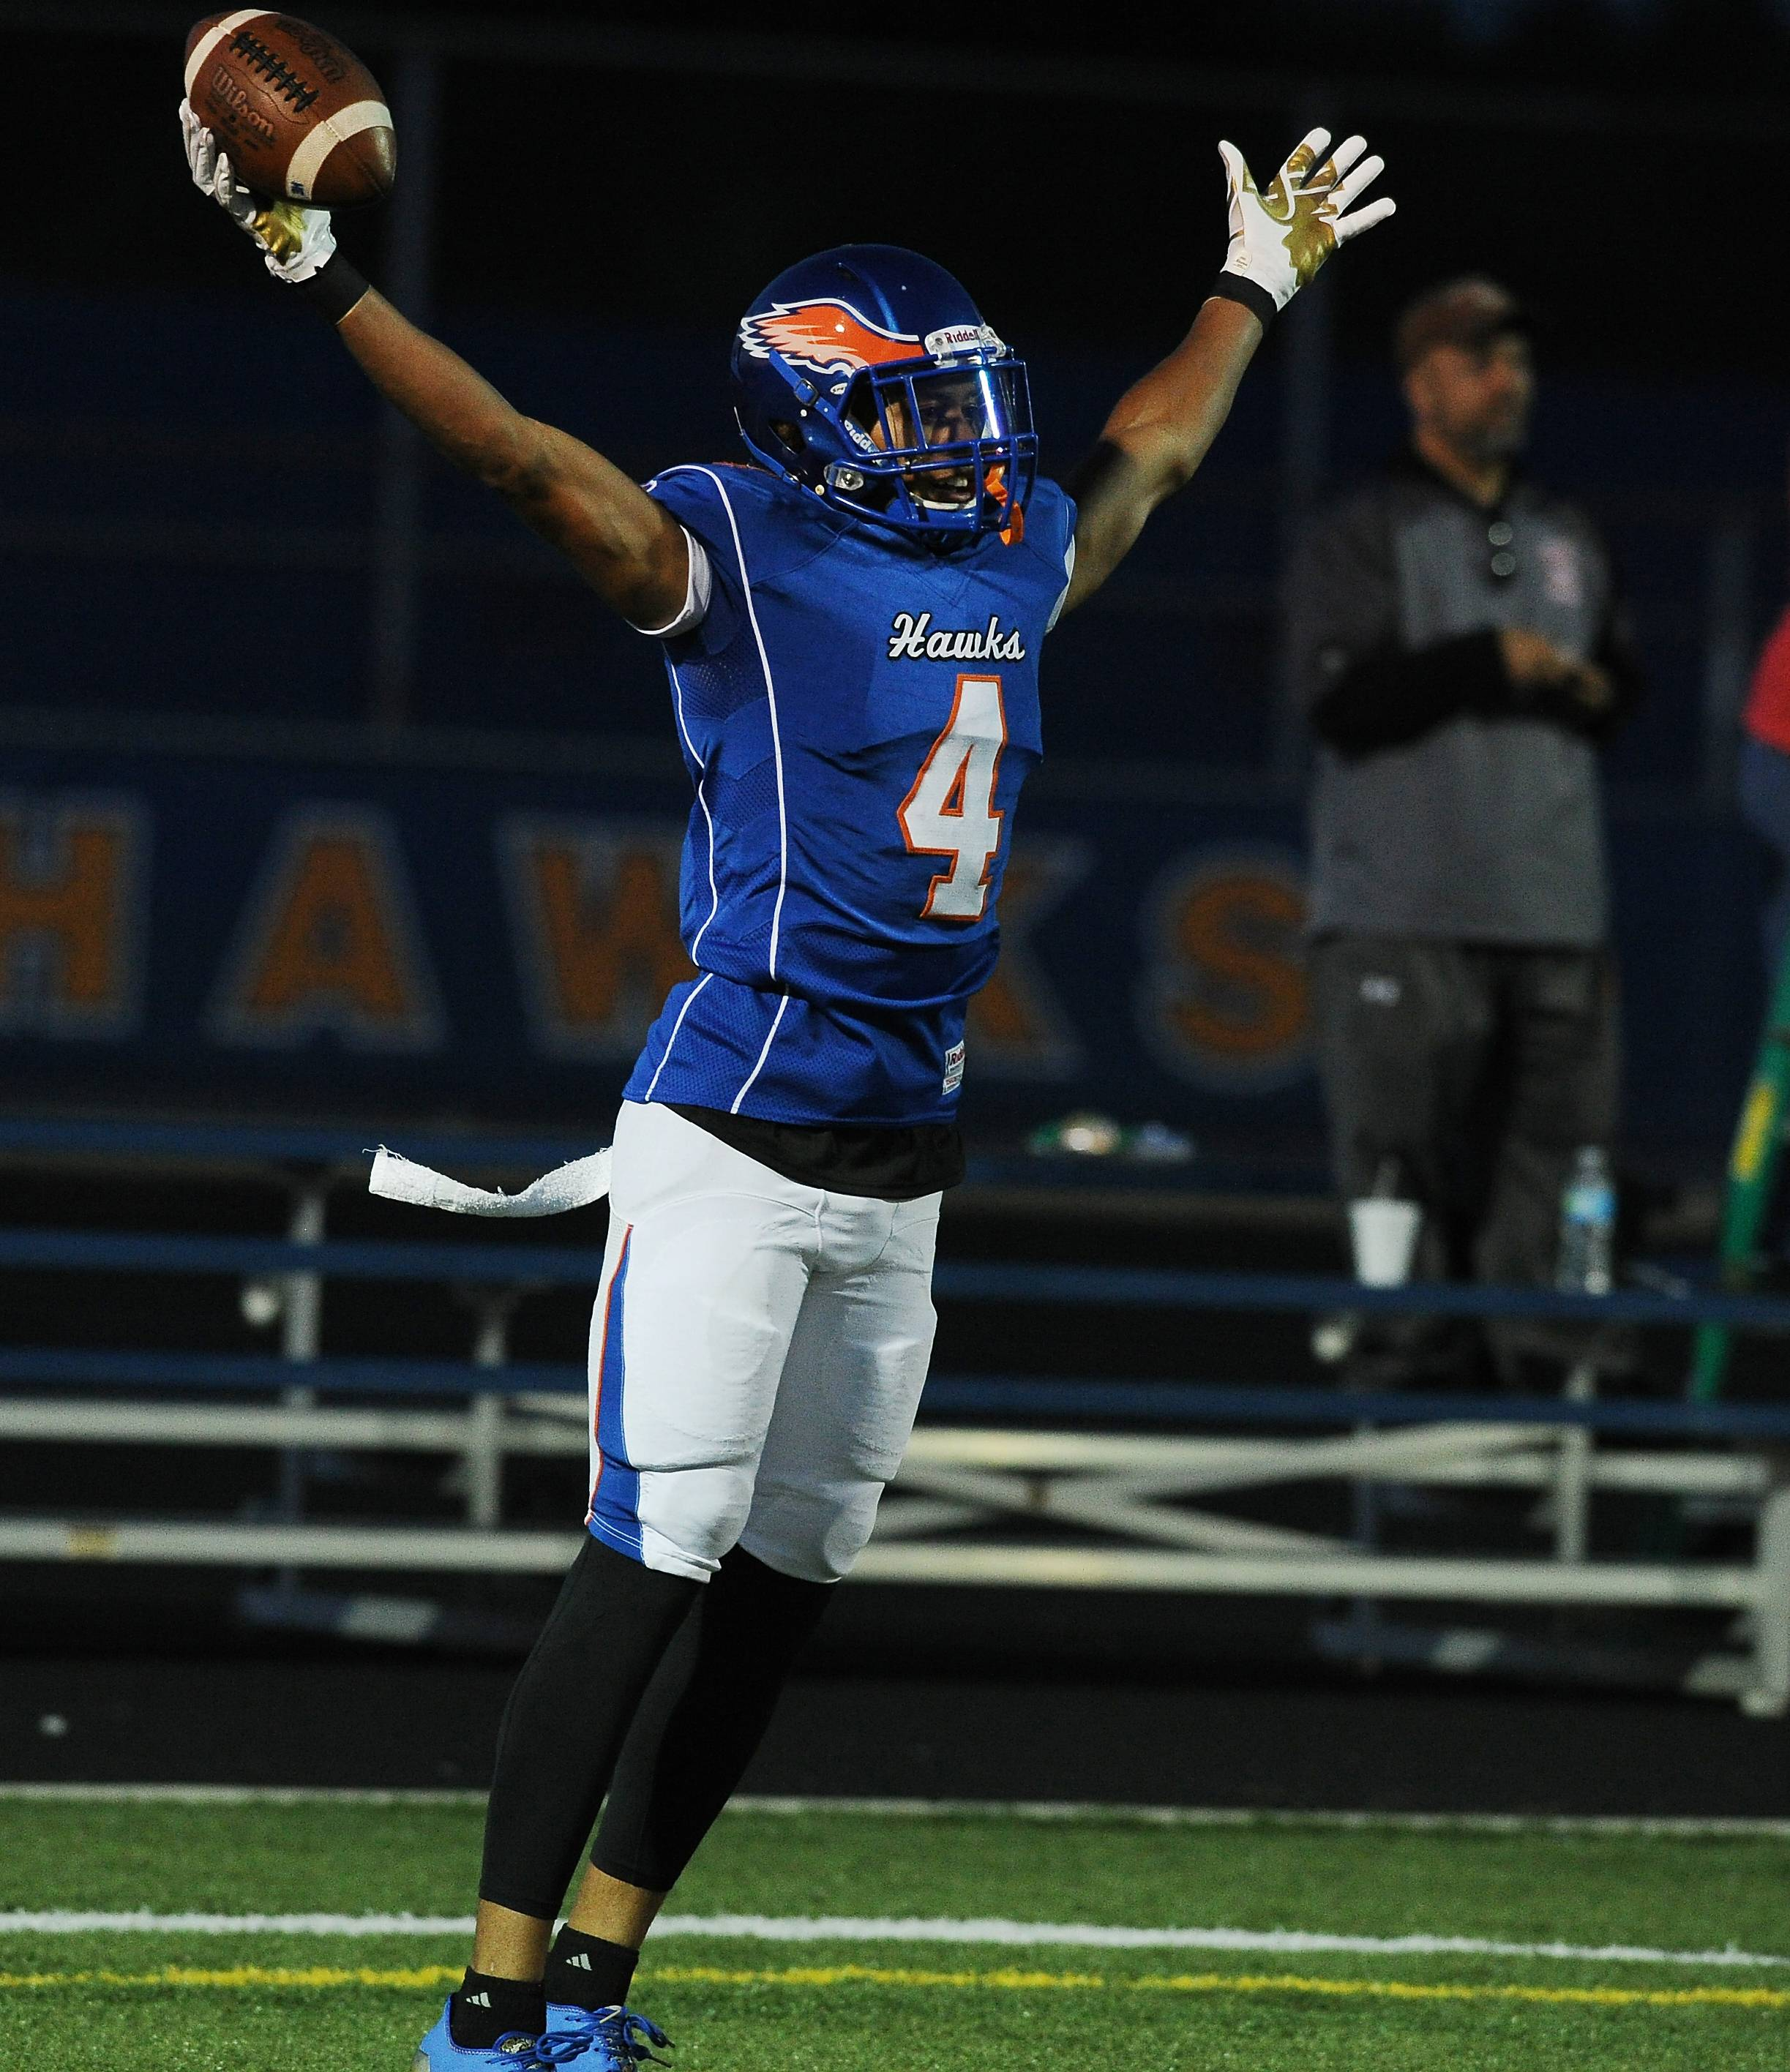 Hoffman Estates' Jayvon Blissett celebrates after hauling in a touchdown pass in the first quarter against visiting Hersey on Friday.